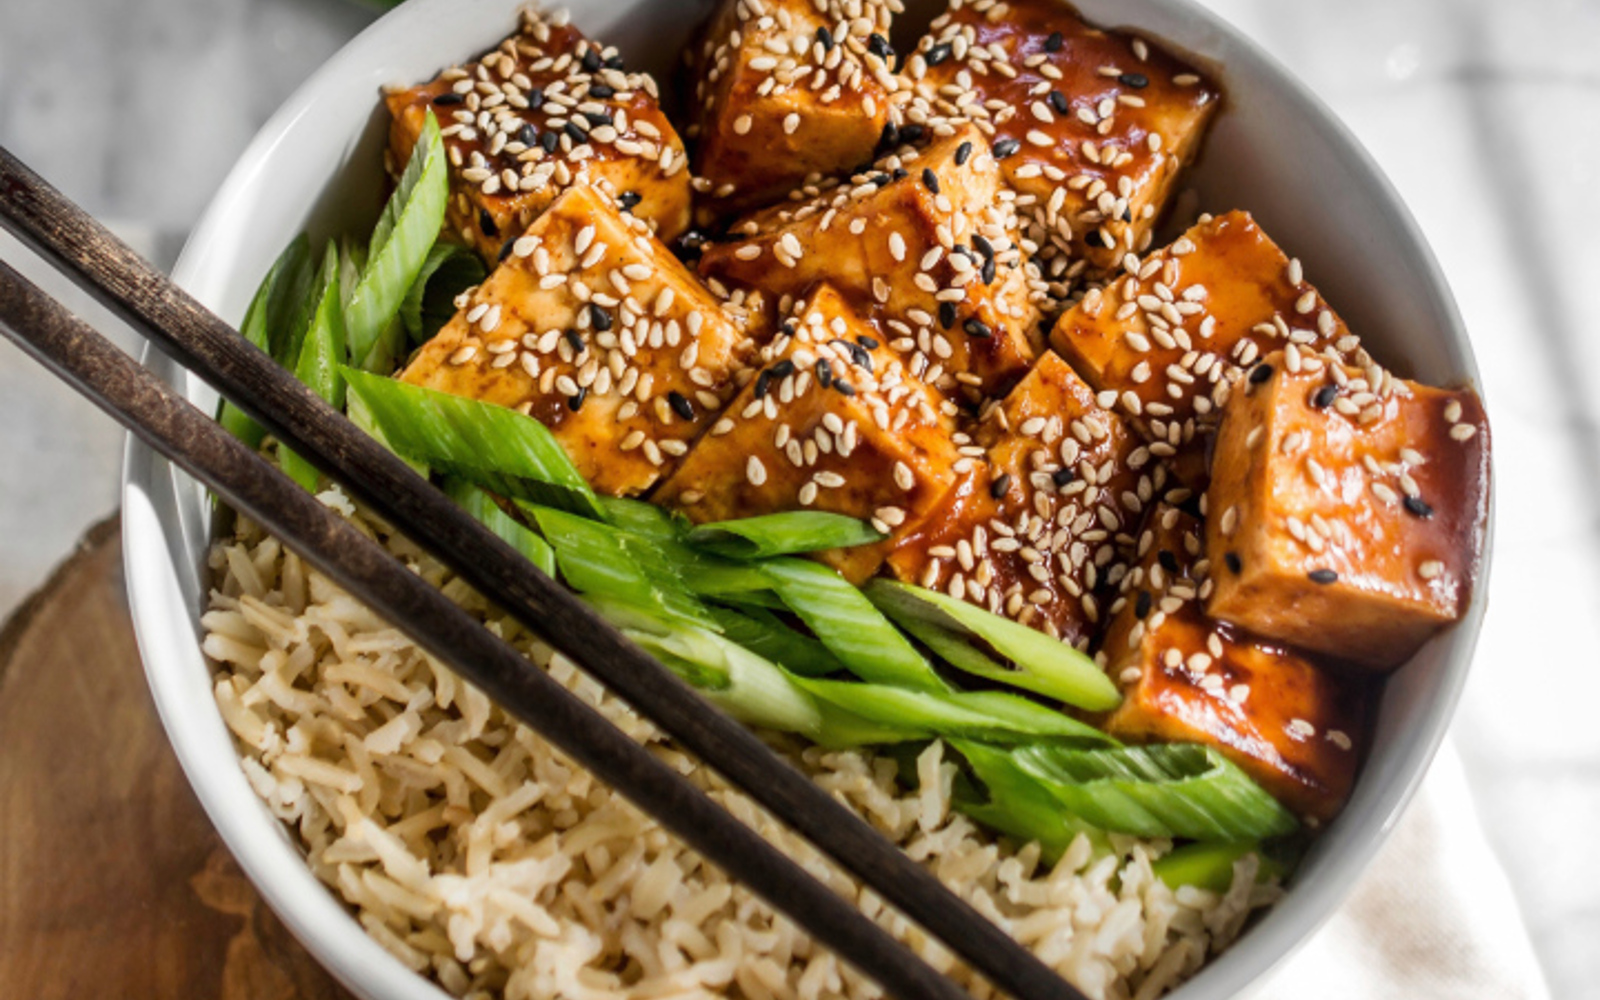 Vegan Sweet and Sour Sesame Tofu Bowl with scallions